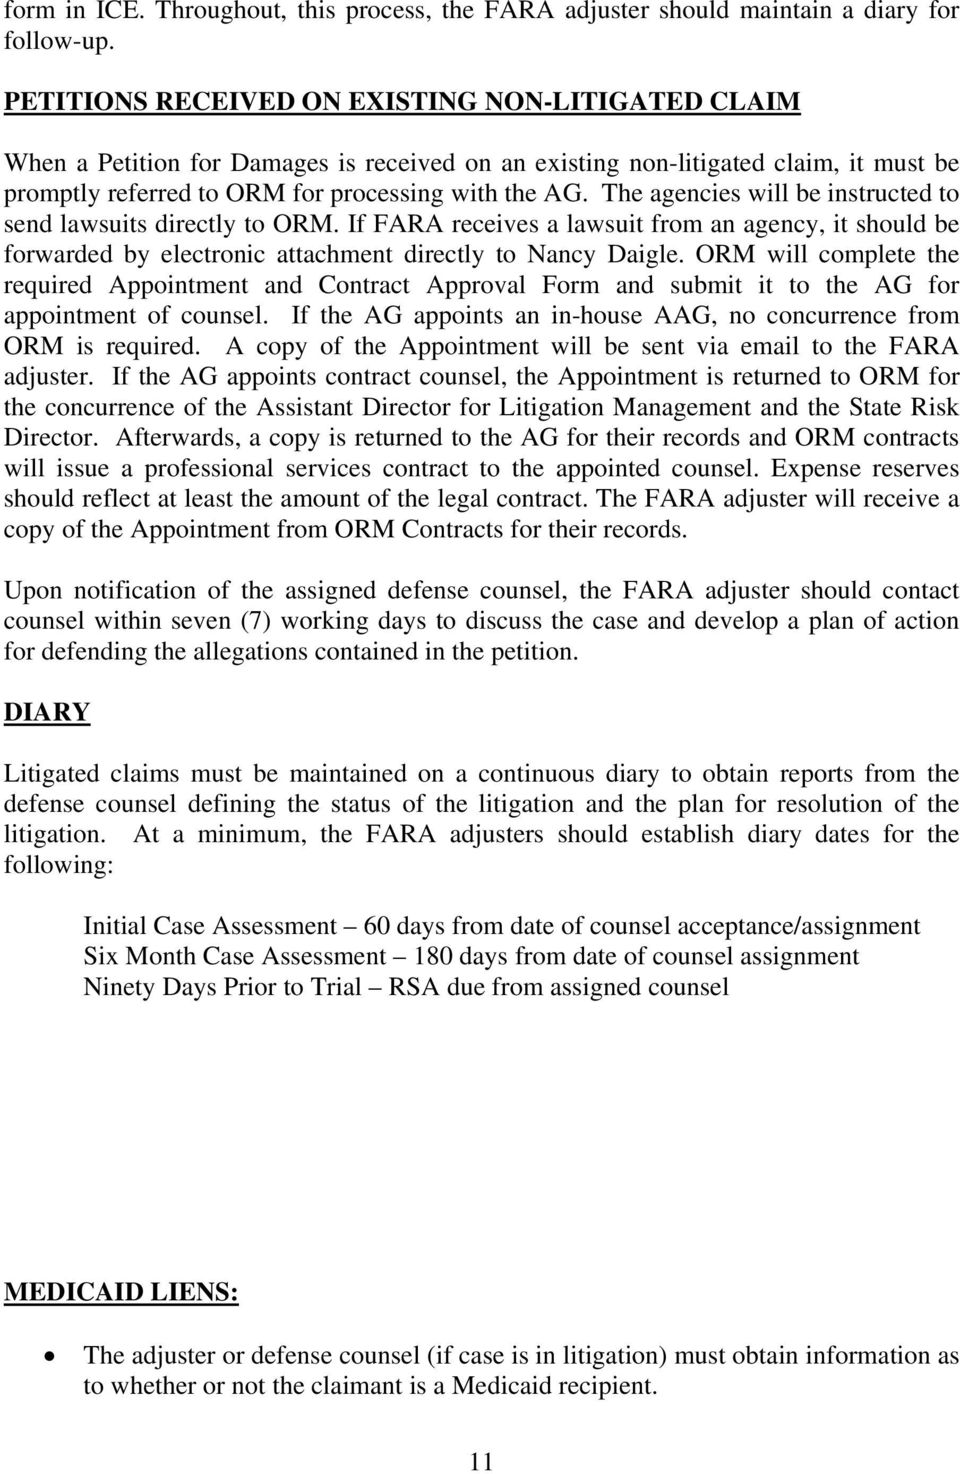 The agencies will be instructed to send lawsuits directly to ORM. If FARA receives a lawsuit from an agency, it should be forwarded by electronic attachment directly to Nancy Daigle.